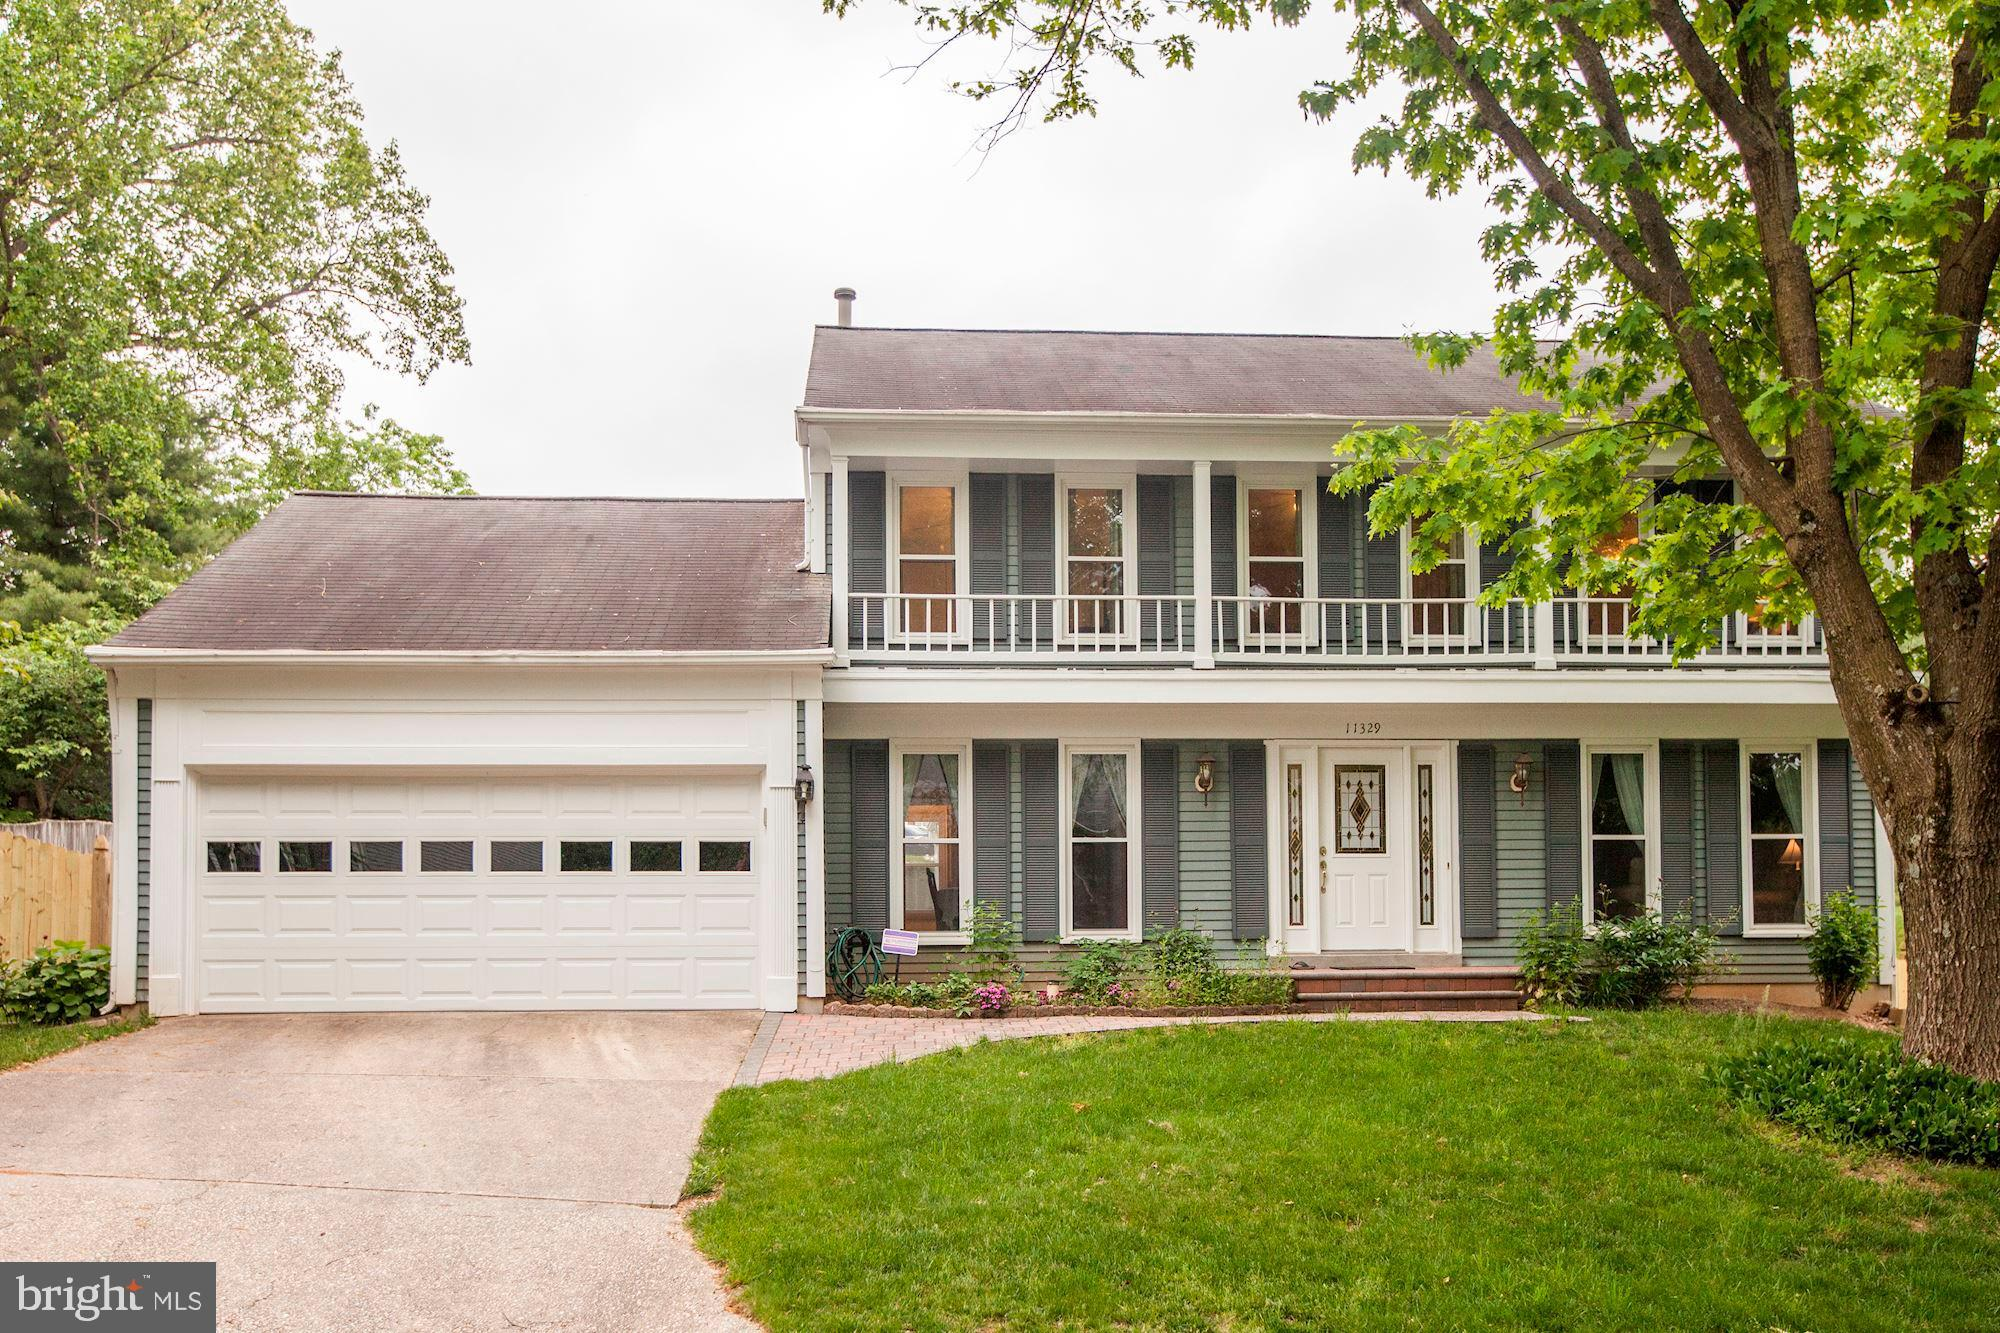 Welcome home to this immaculately cared for single family colonial located in highly desired Dumont